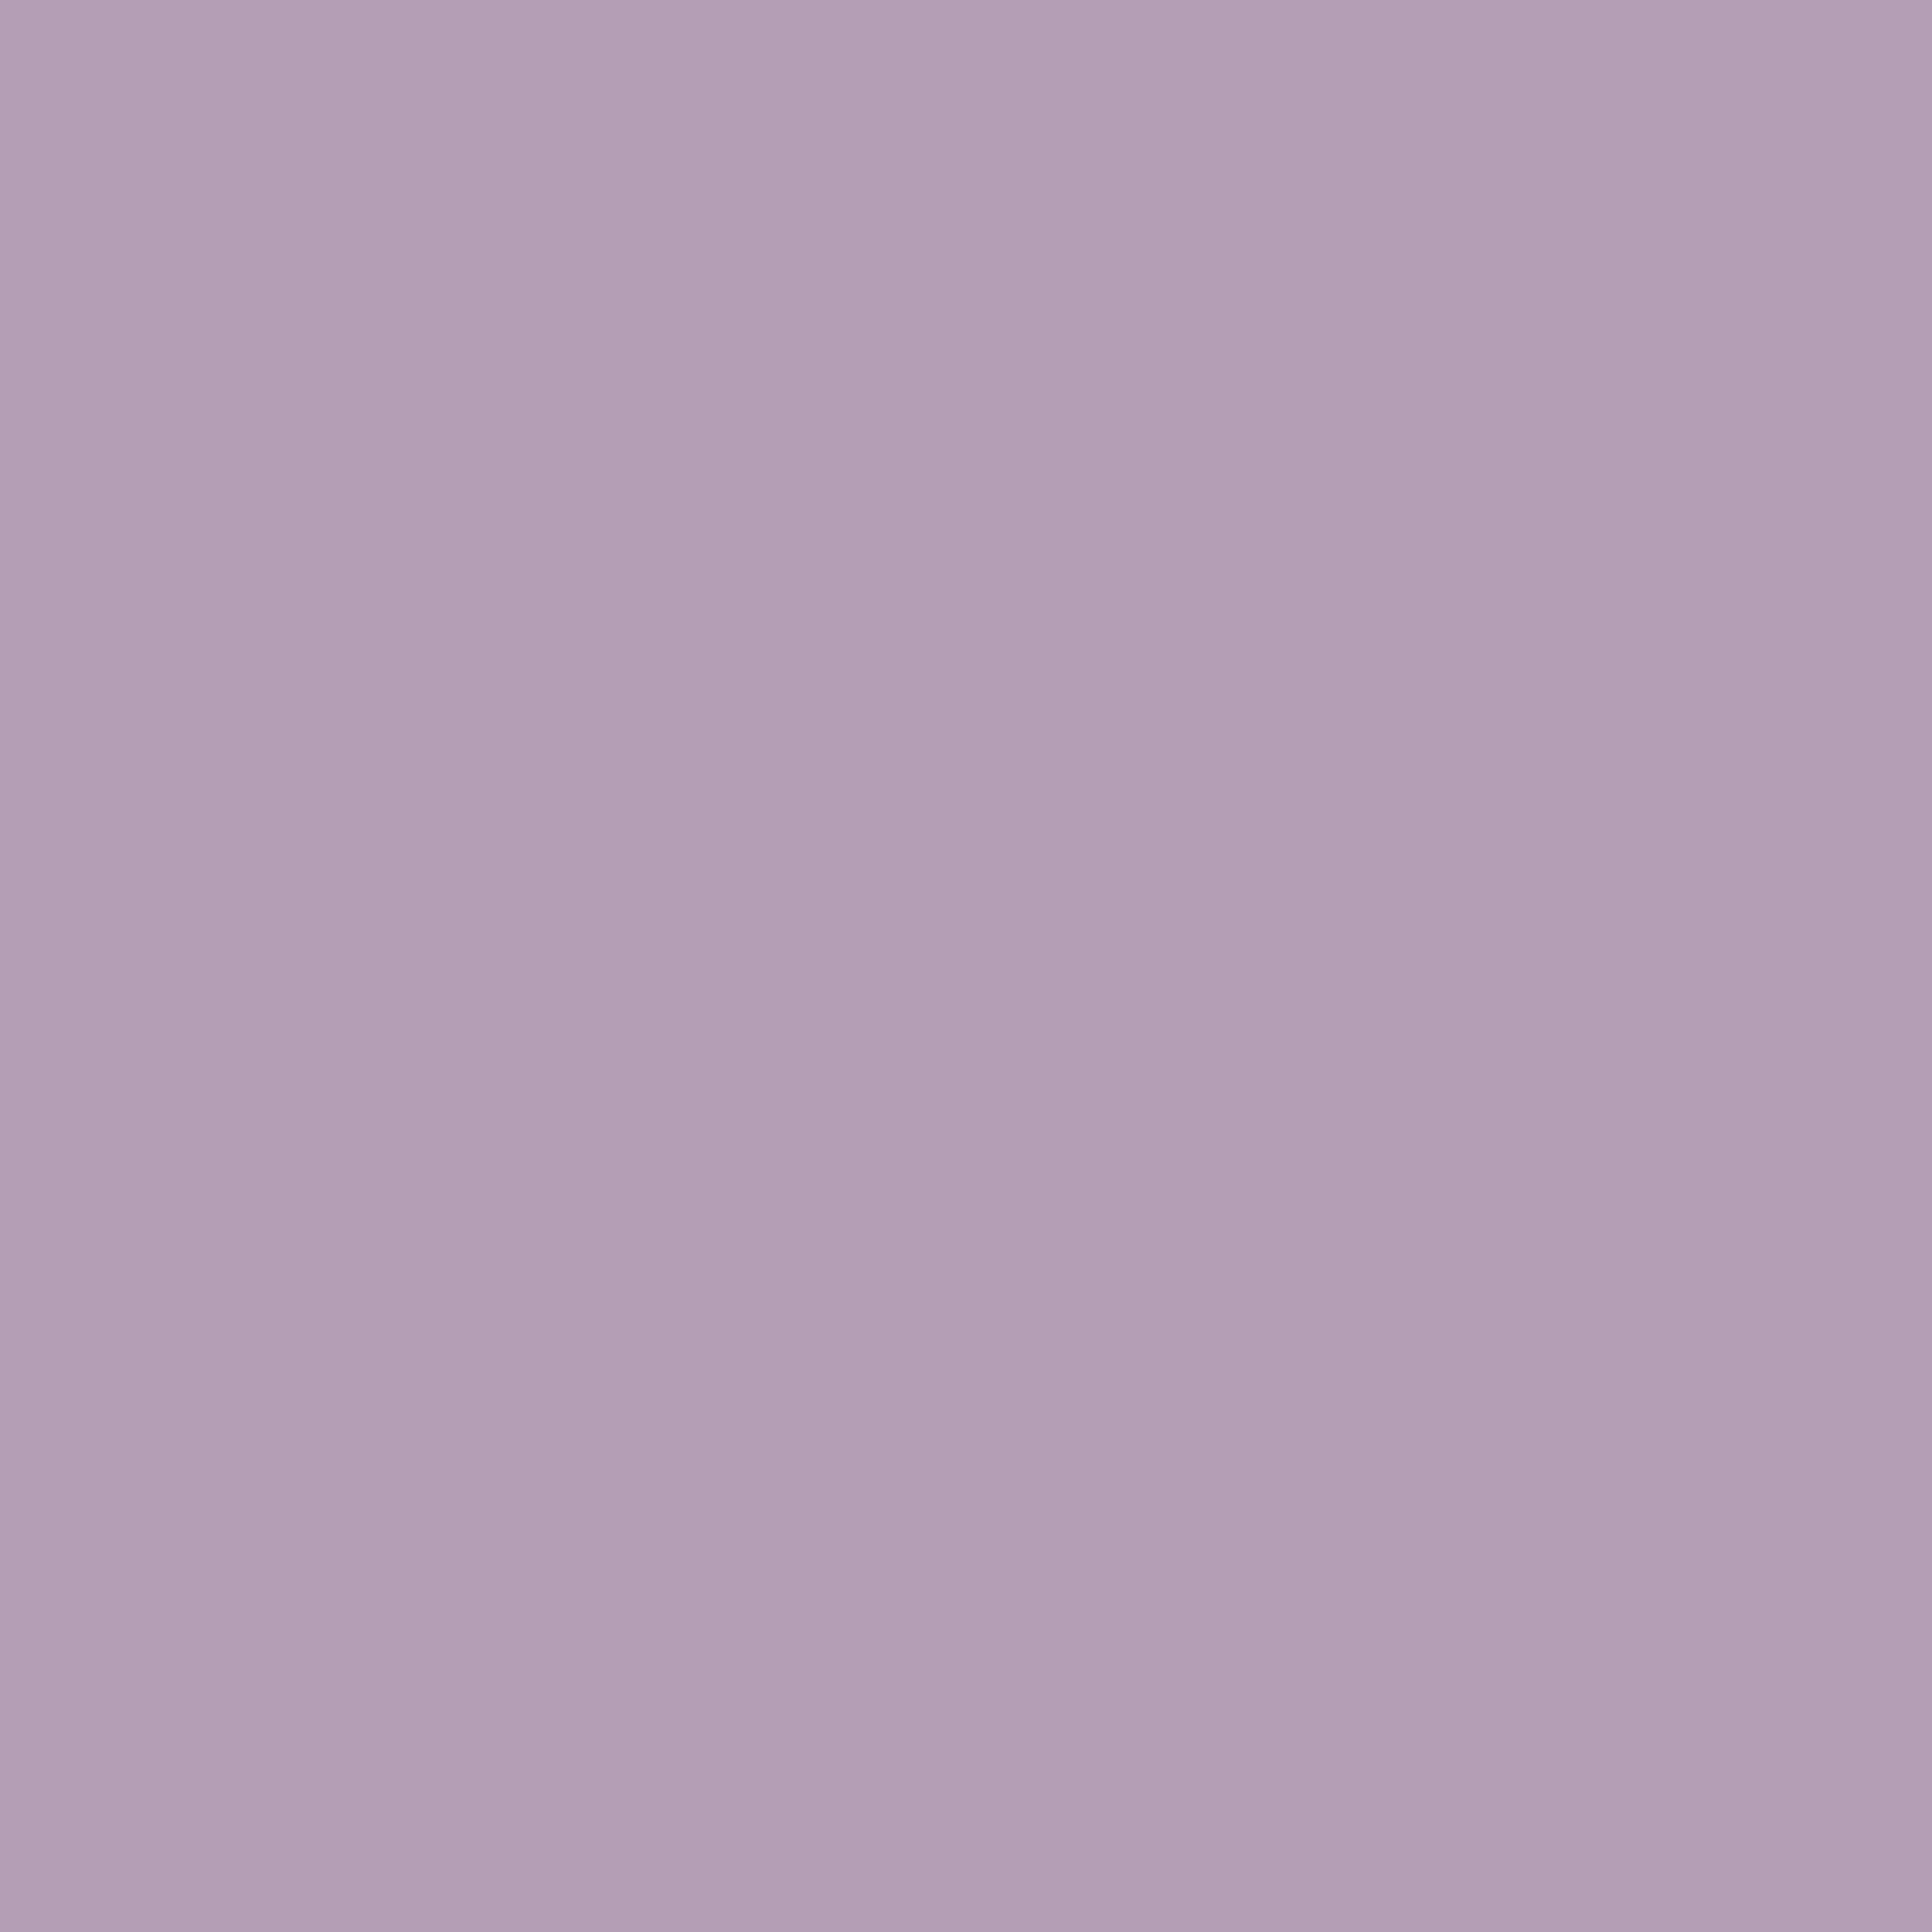 3600x3600 Pastel Purple Solid Color Background